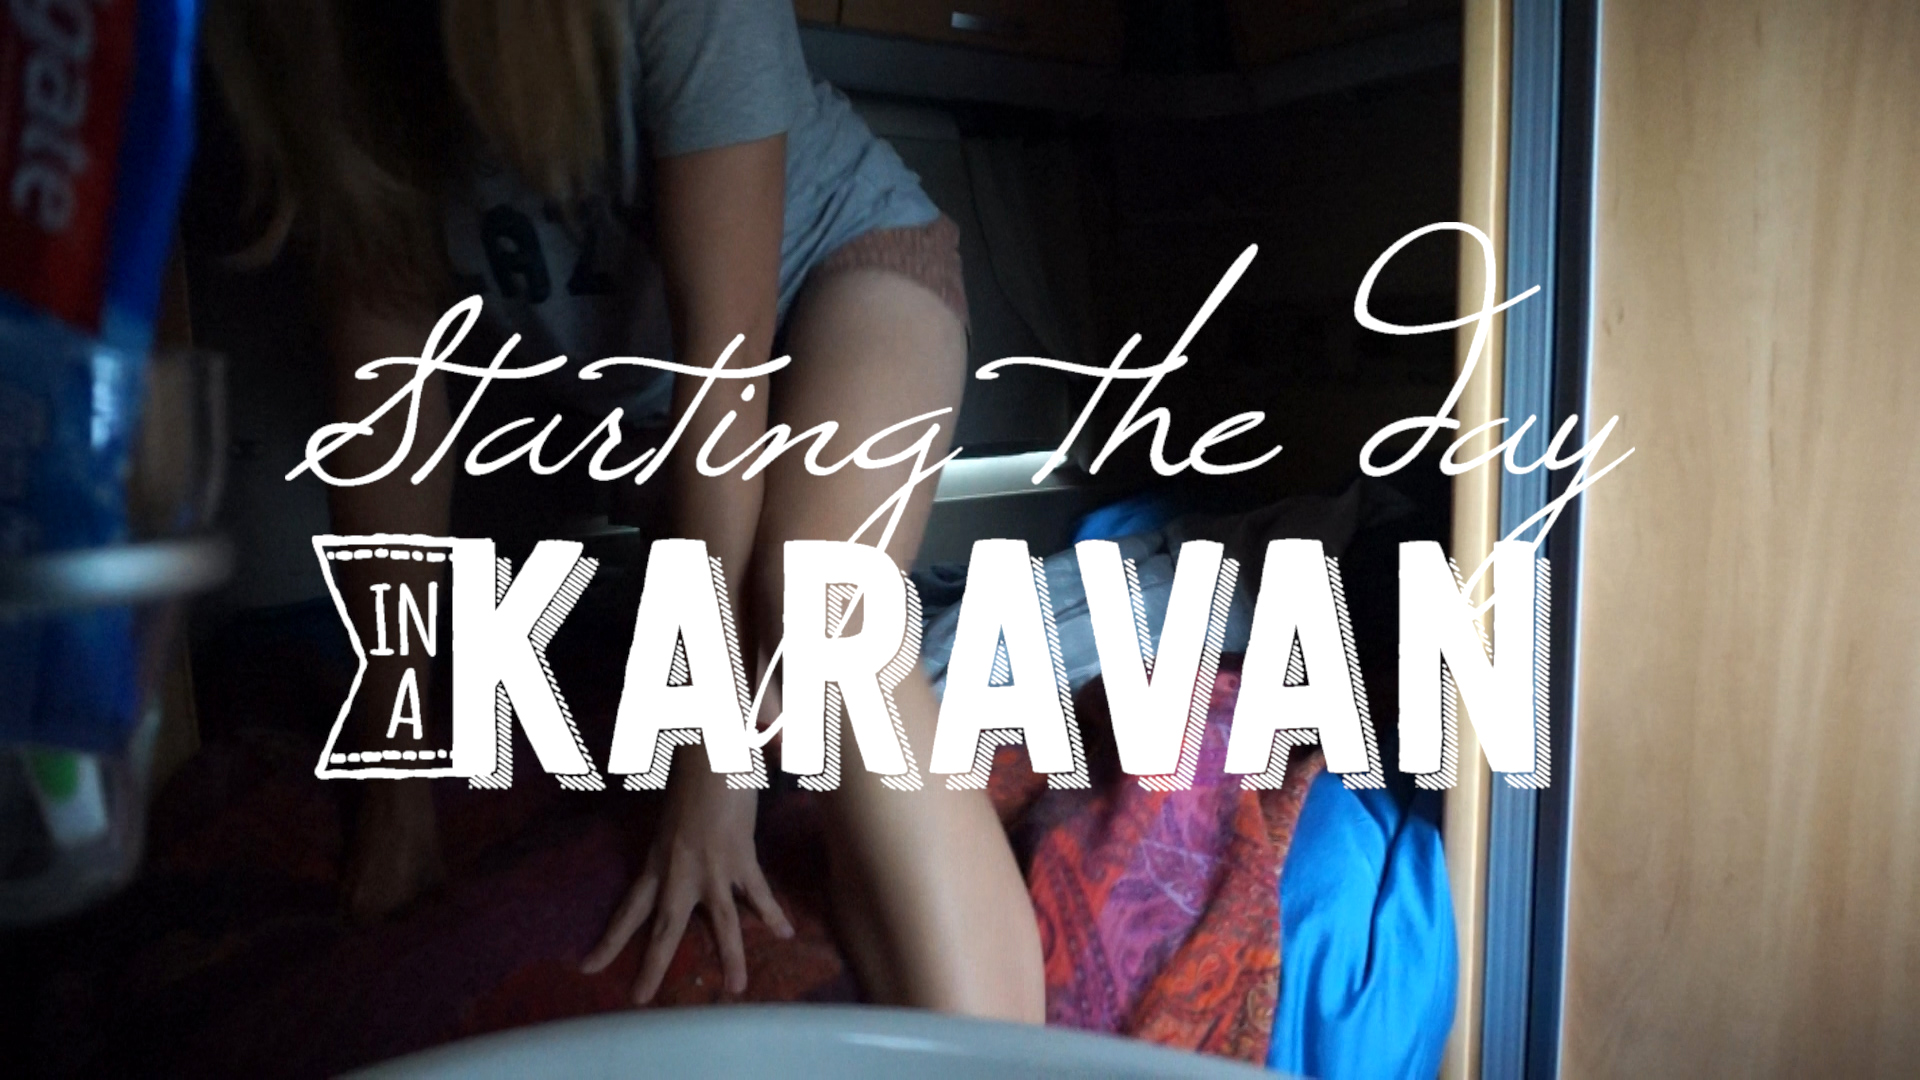 Starting the day in a Karavan